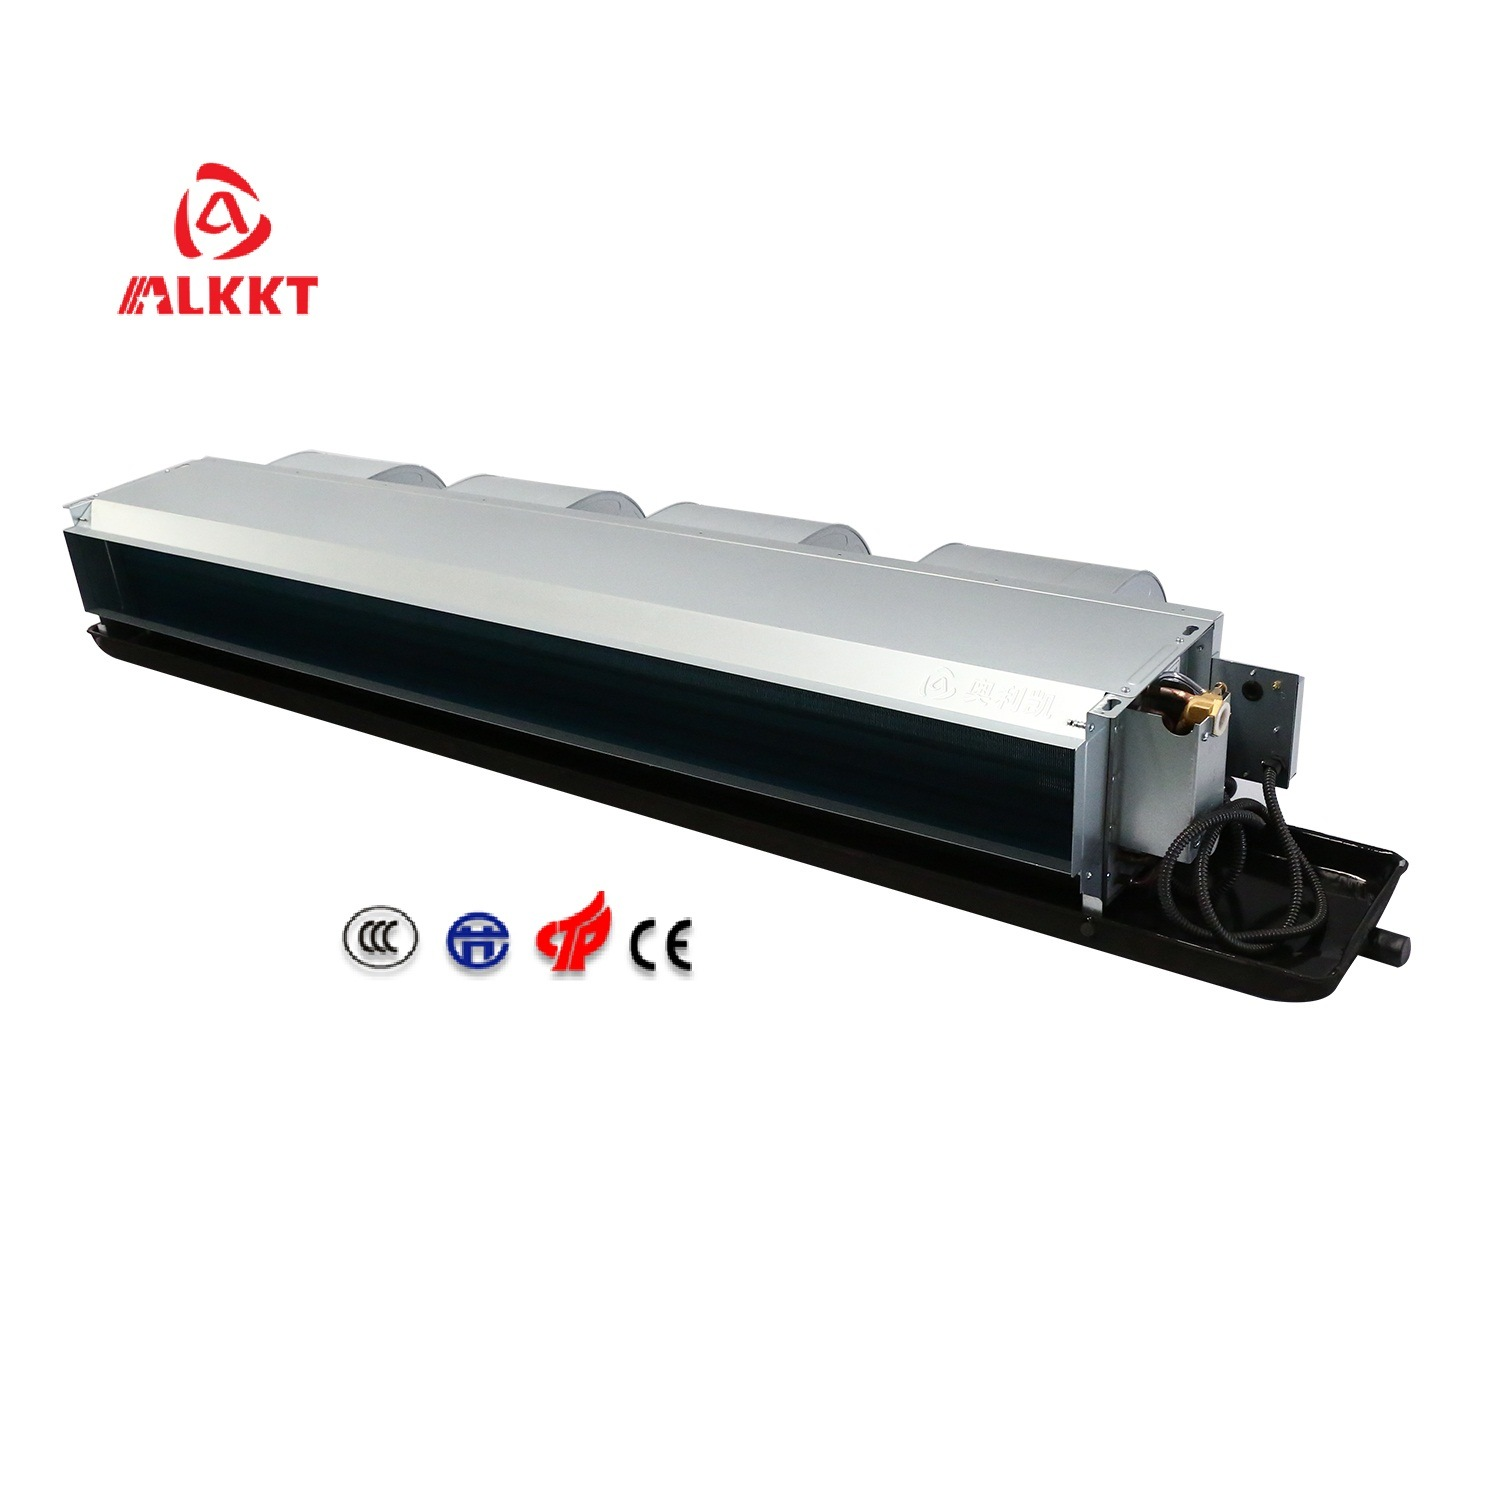 China Hydronic Carrier Chilled Water Fcu / Fan Coil Unit